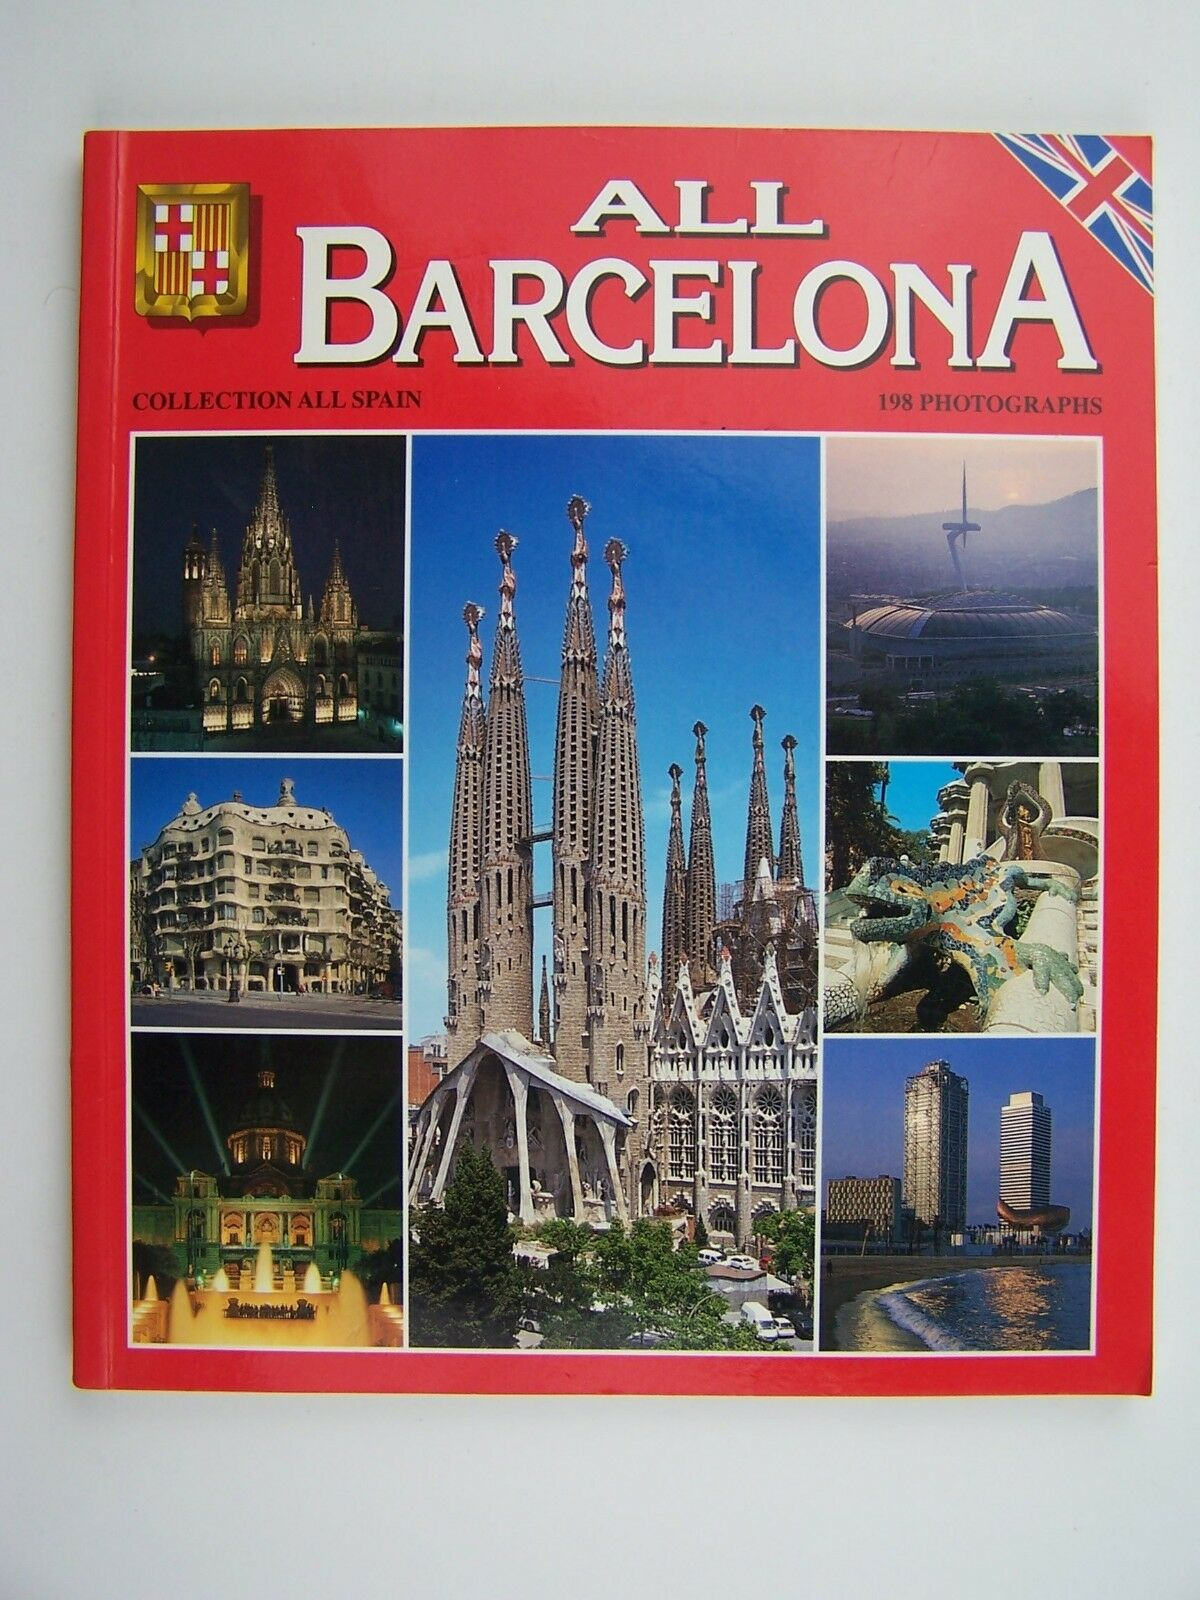 ALL BARCELONA by Manuel Milian Mestre Souvenir Guide Ph